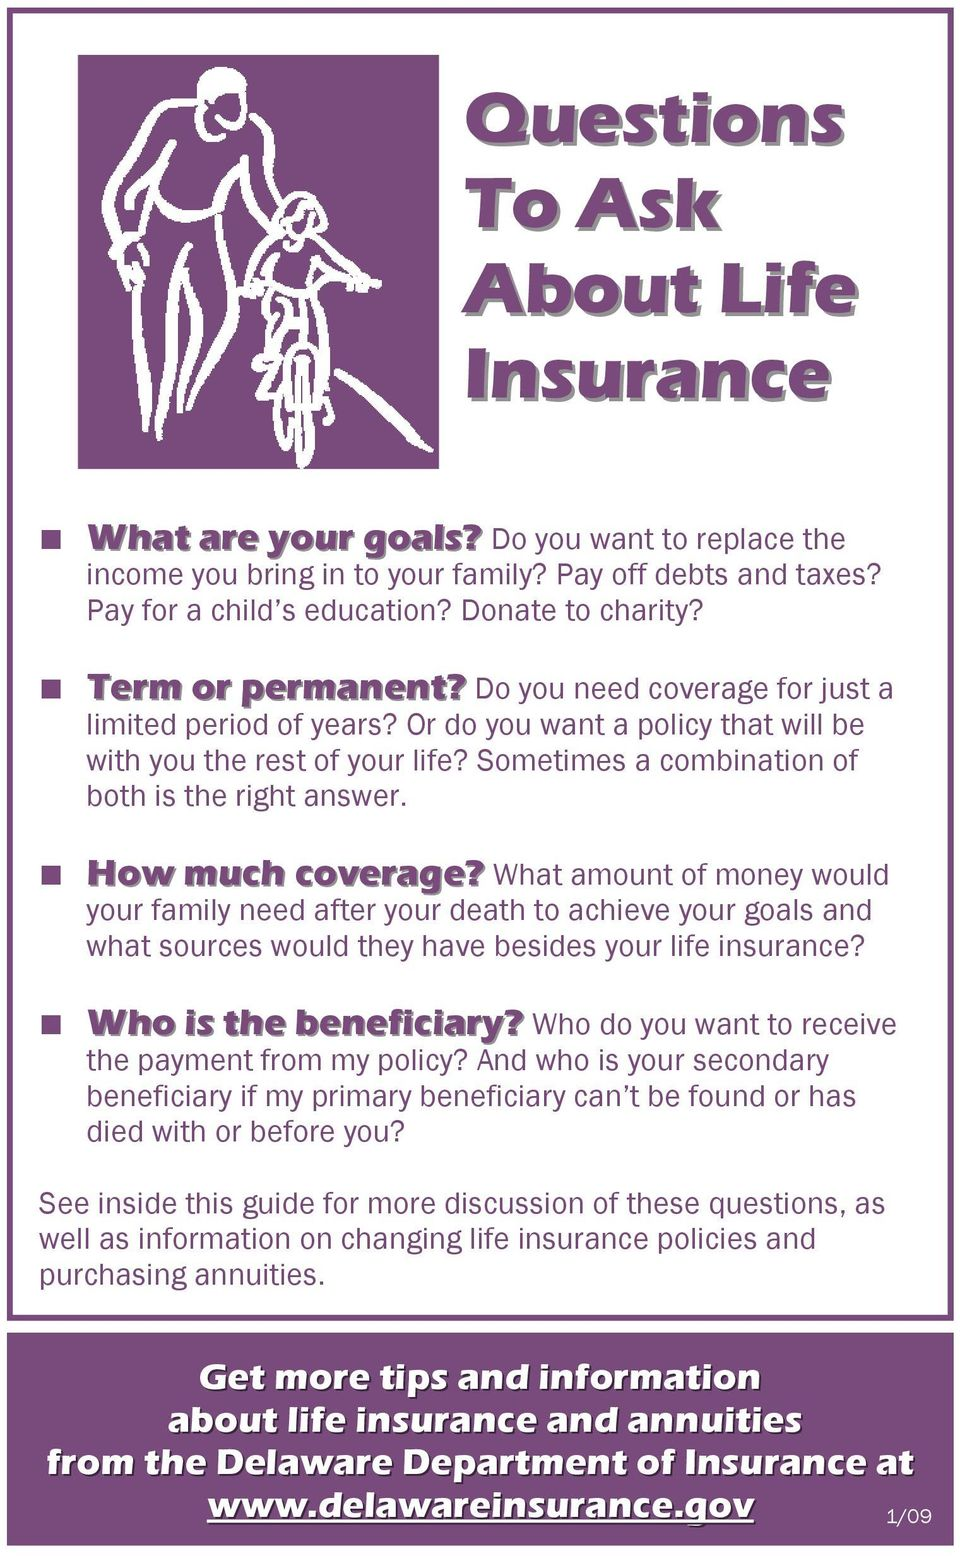 How much coverage? What amount of money would your family need after your death to achieve your goals and what sources would they have besides your life insurance? Who is the beneficiary?